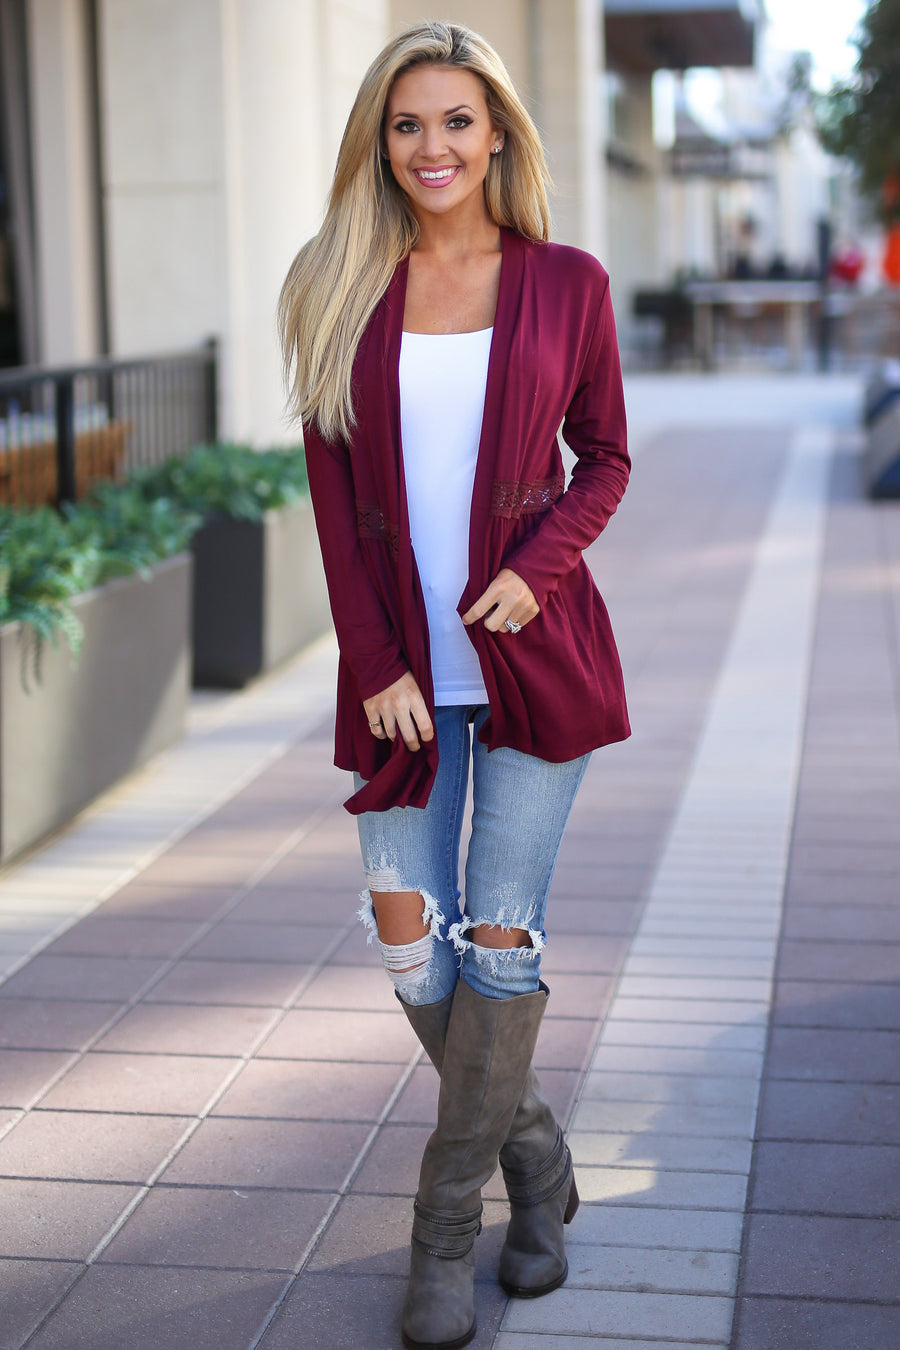 Just Gets Better Cardigan - Wine long sleeve cardigan, side, Closet Candy Boutique